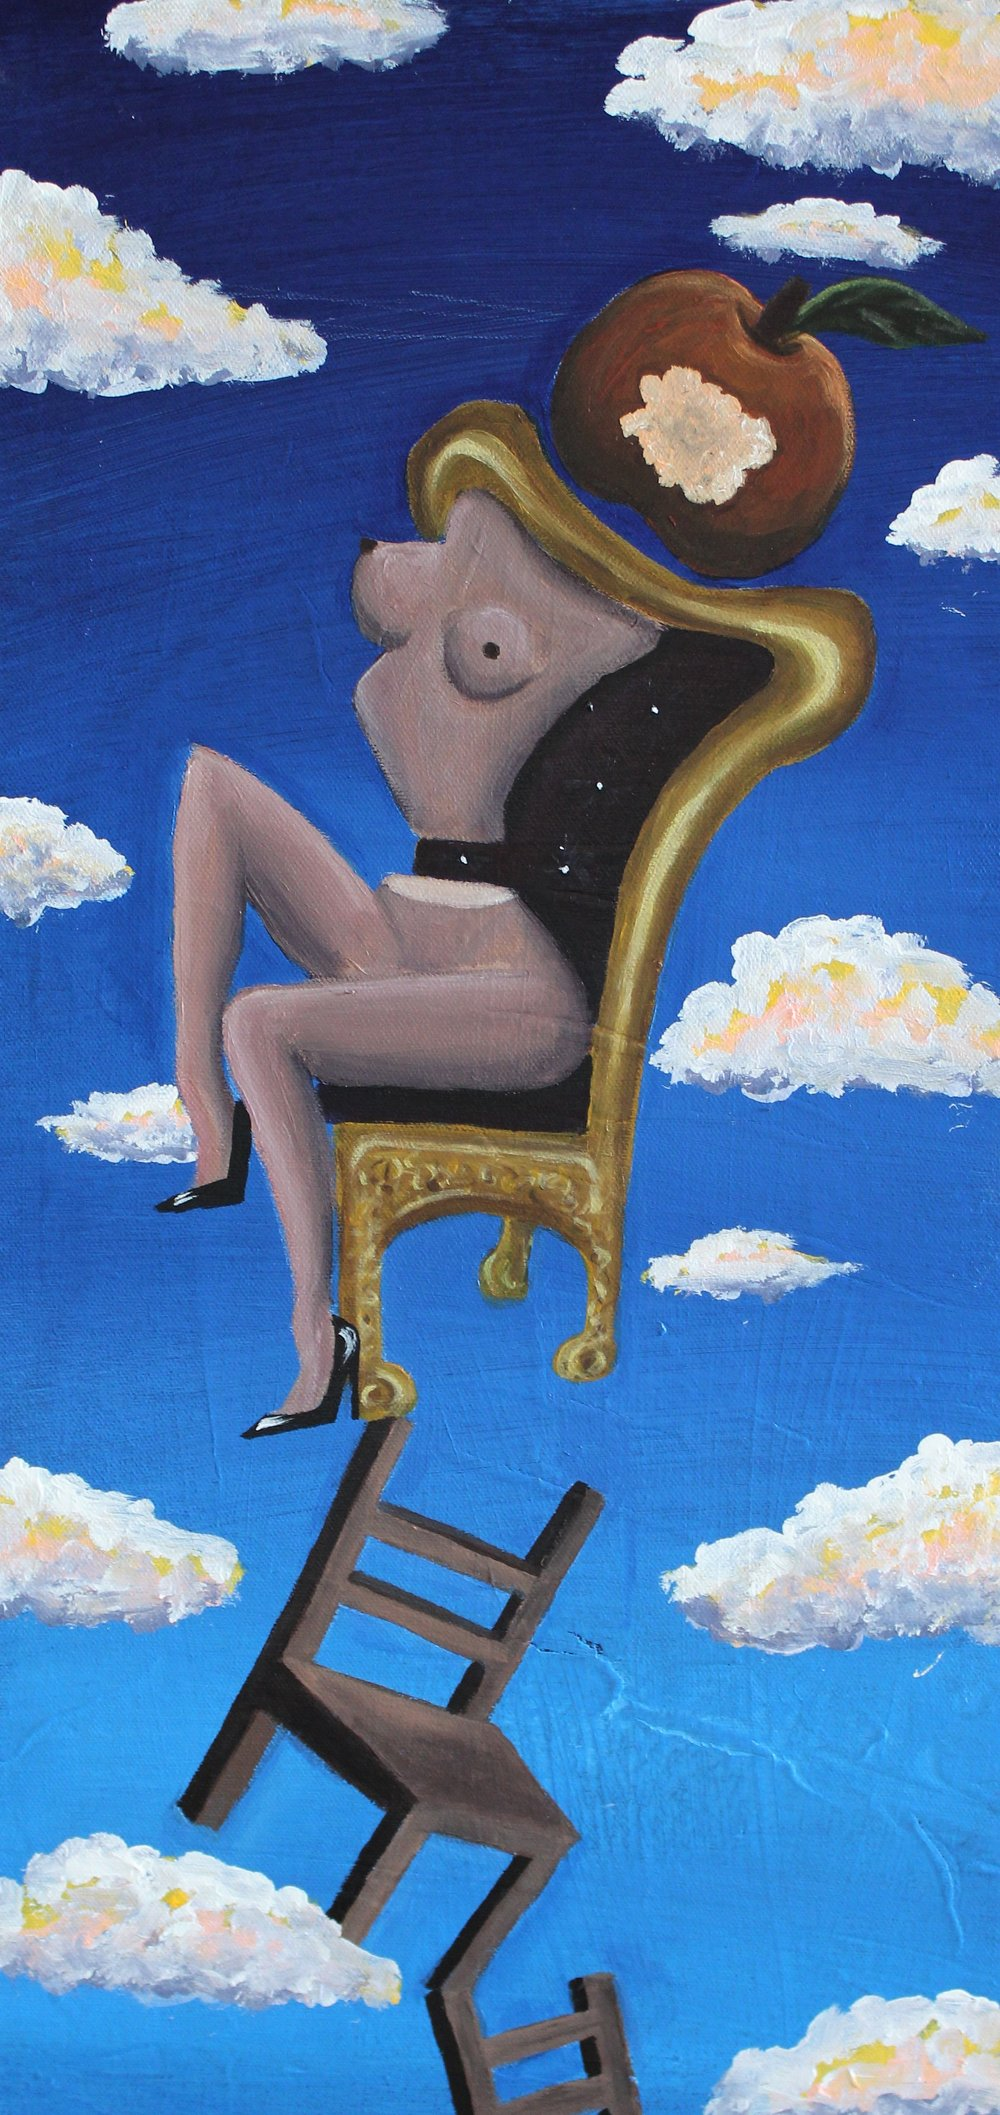 Abi Salami -Sitting Precariously I - Acrylic on canvas - 24H 12W 1.5D- 2018 - $750.jpg.jpg